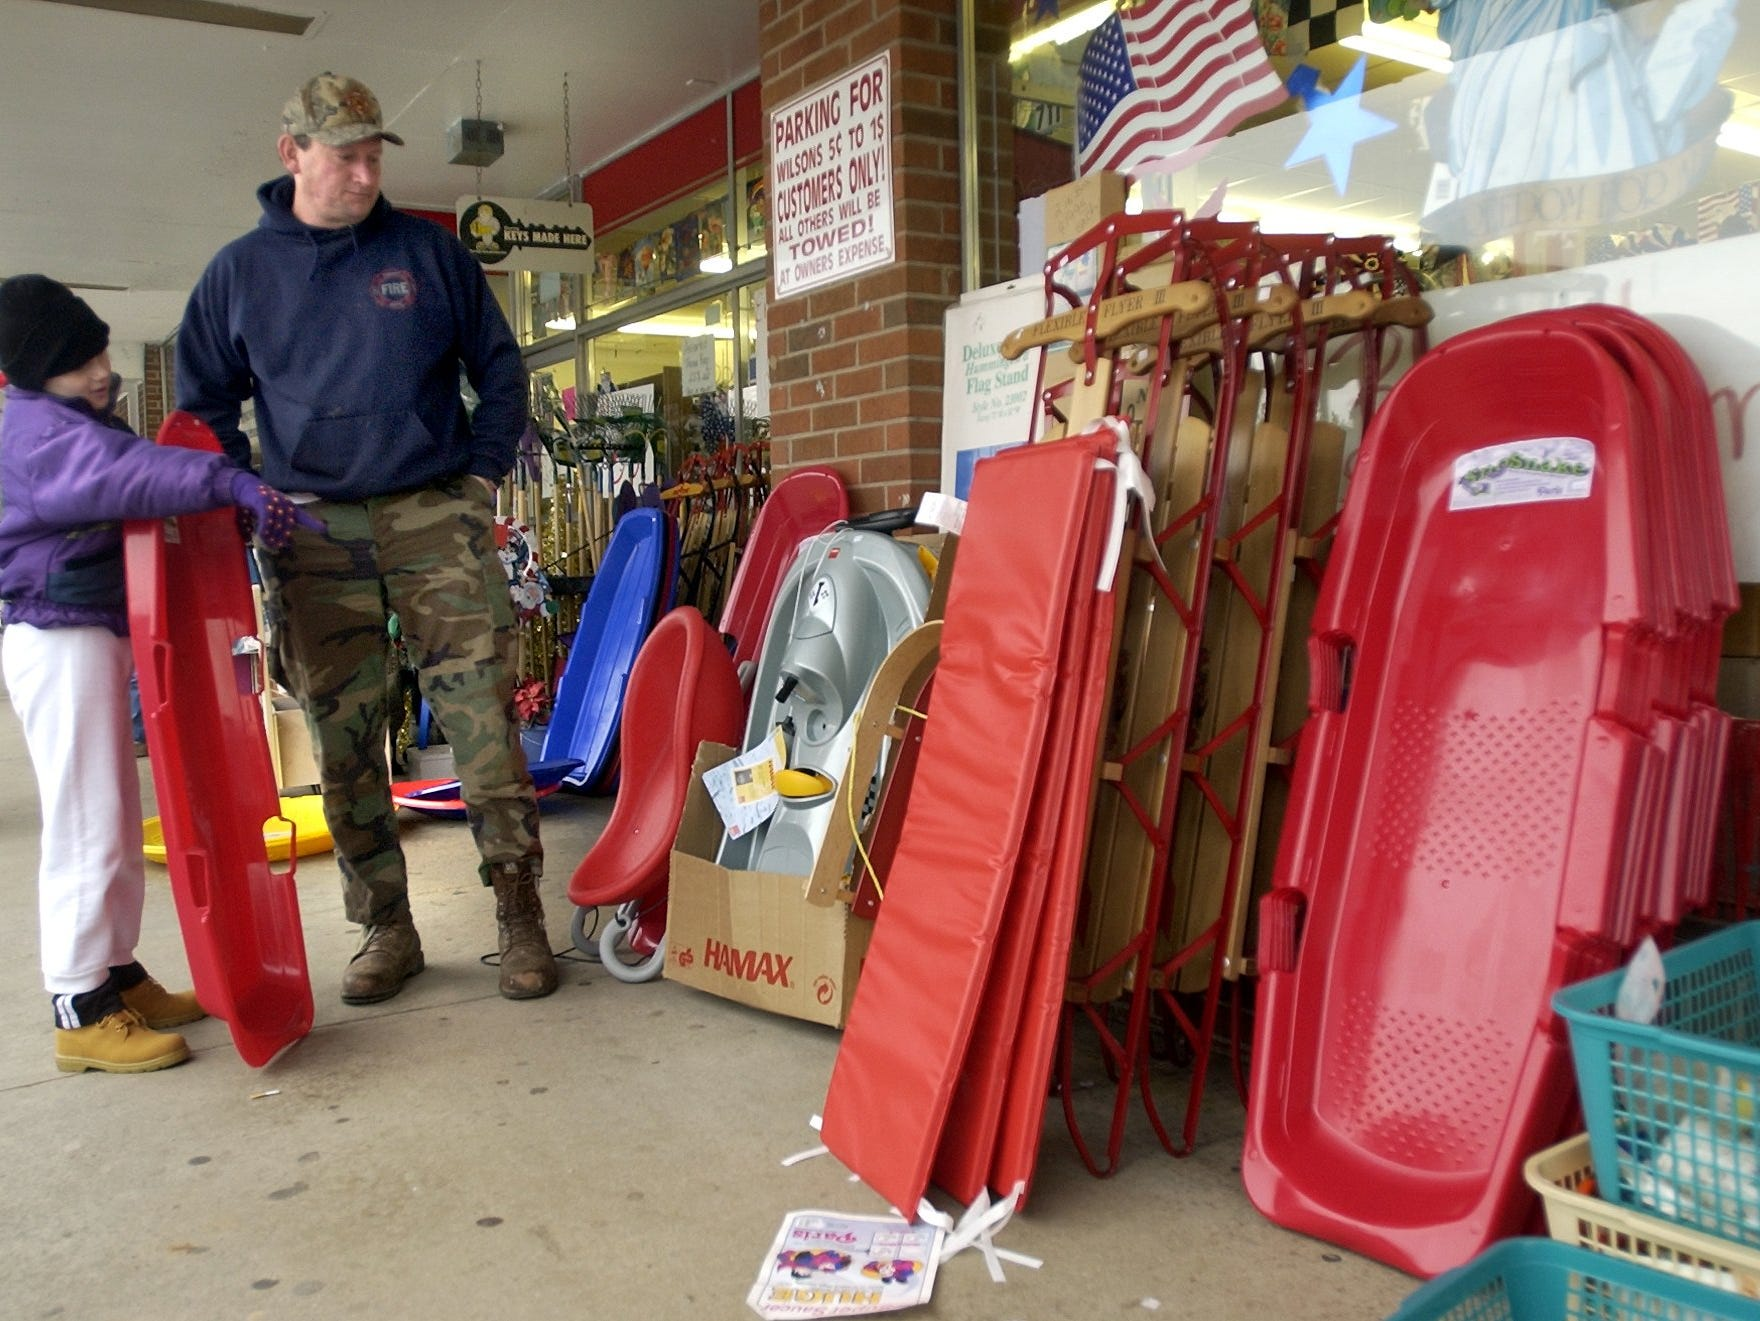 Danielle Waynick, 9, and her father Tommy Waynick shop for sleds at the Wilson's Five and Dime in Berea Wednesday afternoon. Waynick said they live in Travellers Rest which was getting some snow while they shopped. Store manager Jane Jobe said she's shold close to 100 sleds adn gotten calls from as many shoppers asking if they had sleds.